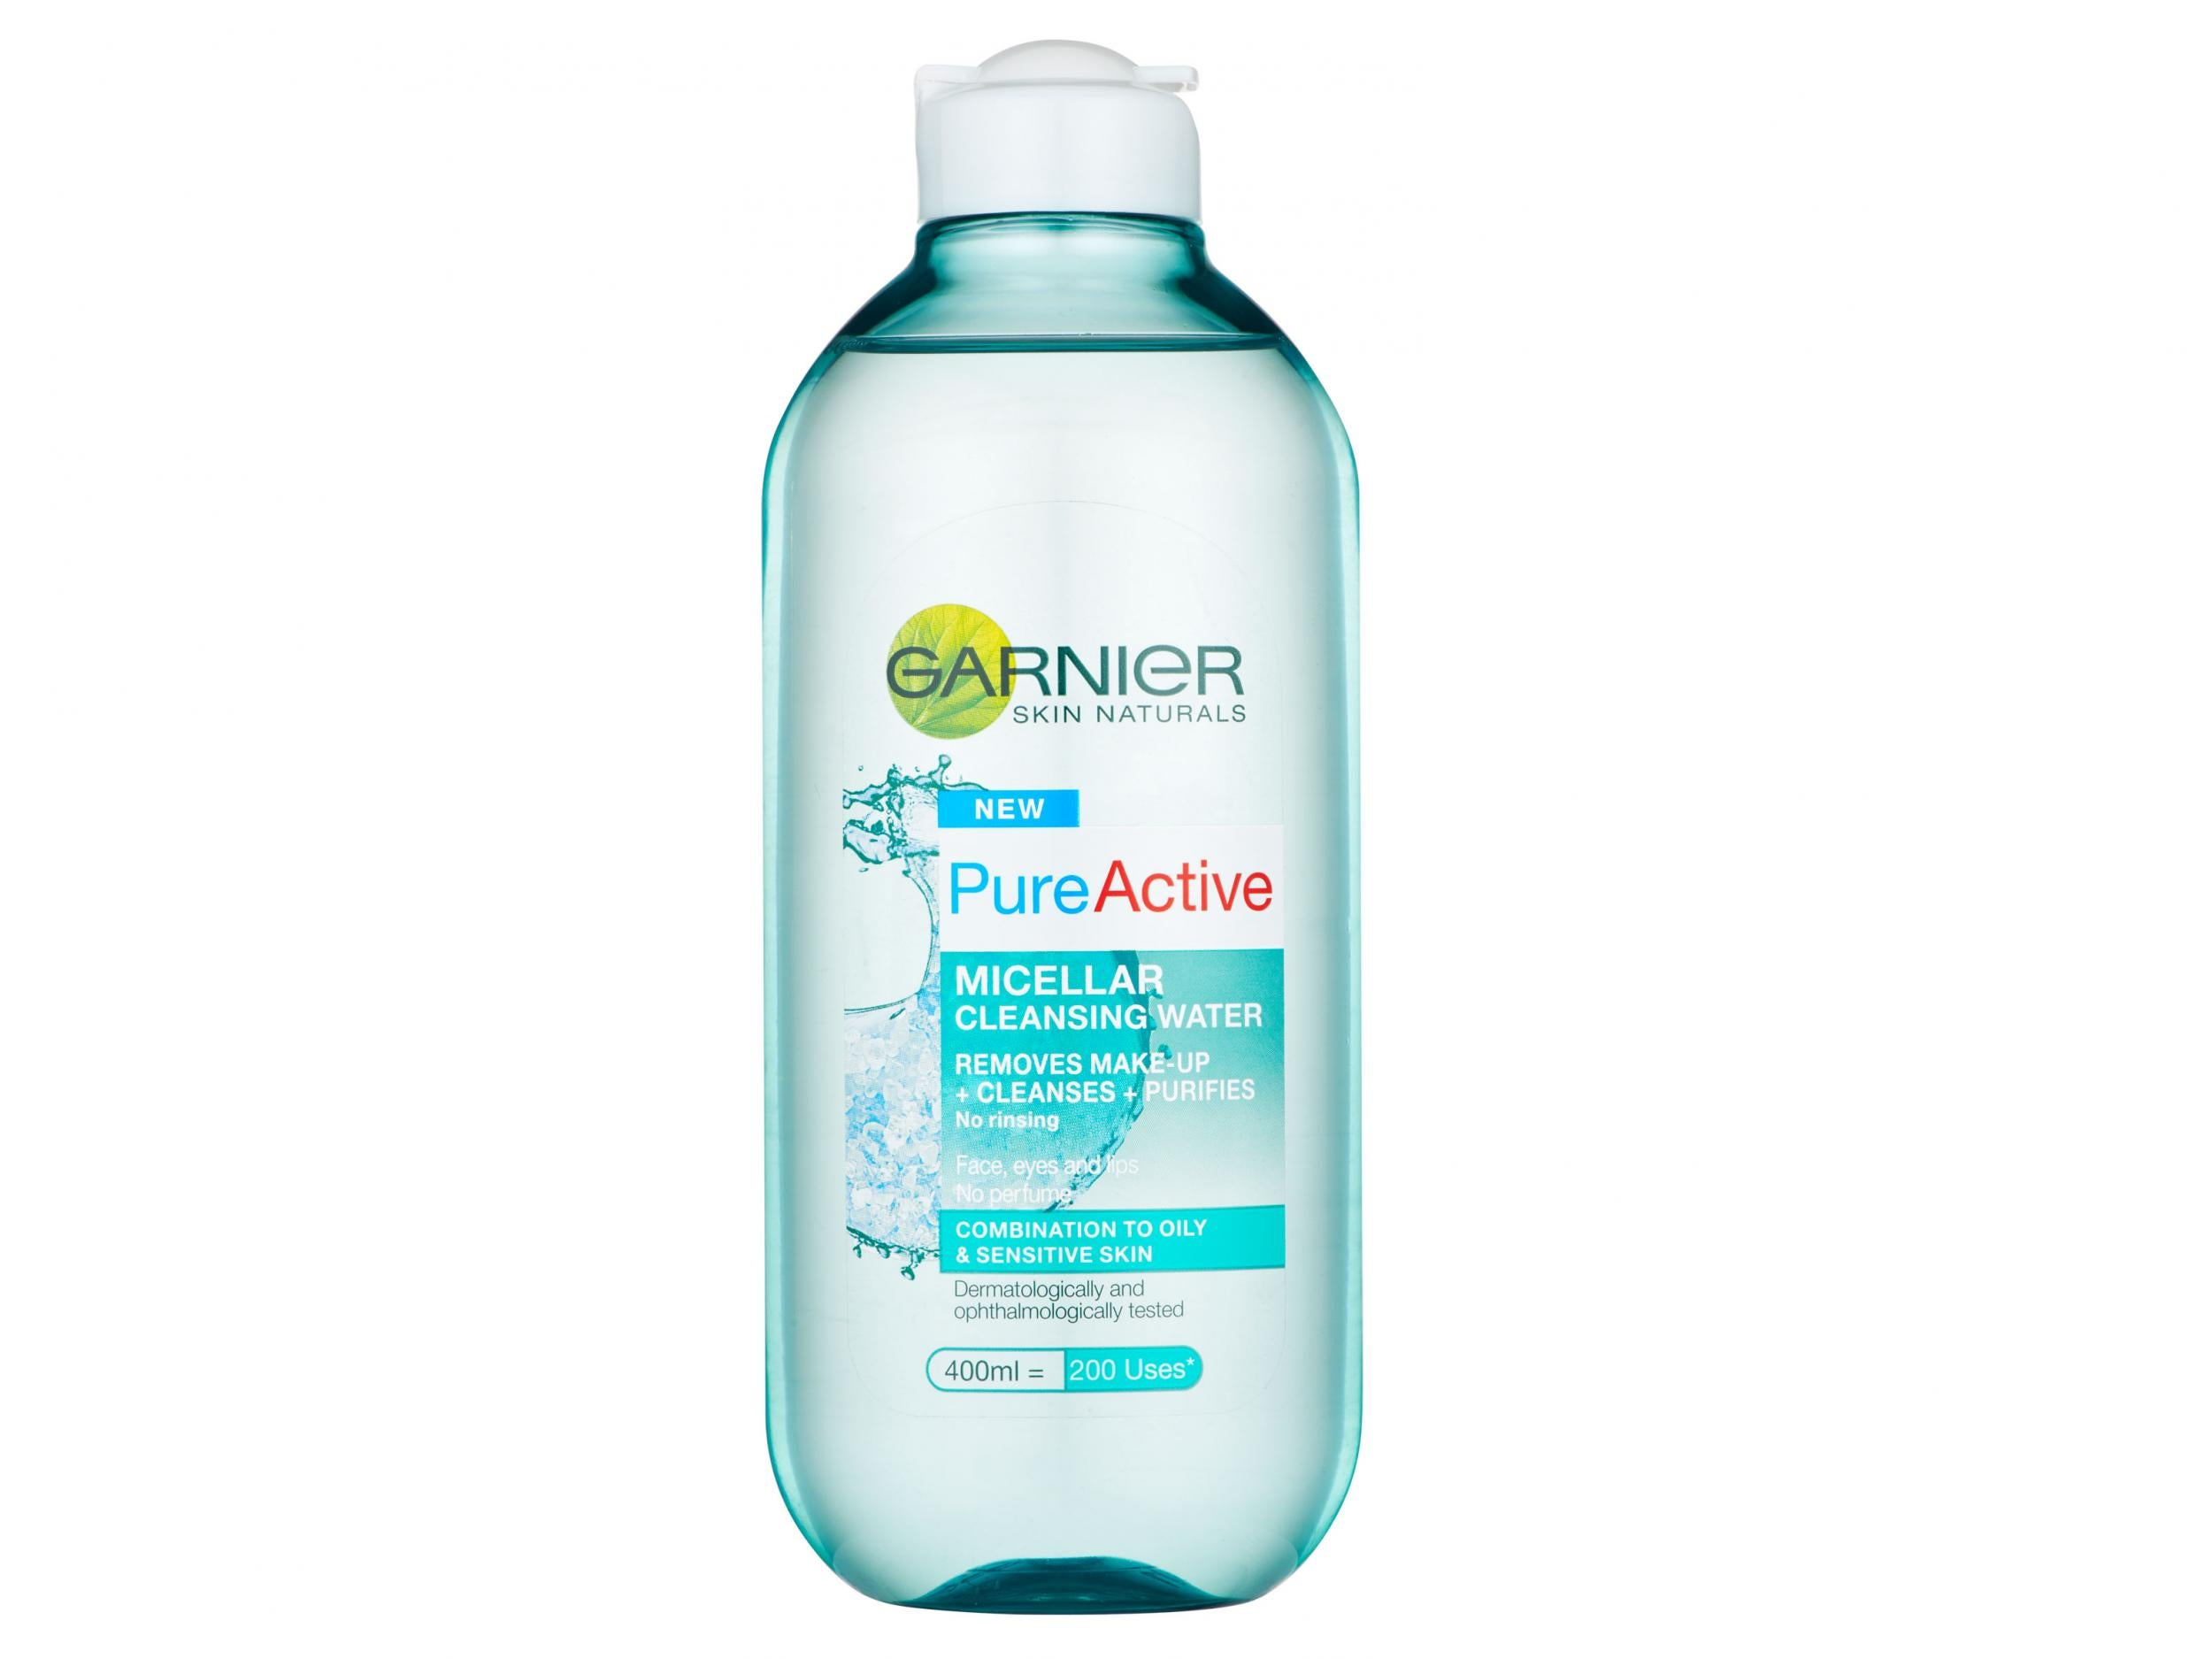 13 Best Micellar Waters And Cleansers For Oily Skin The Independent Garnier Pure Active Acne Care Whitening Cream 20ml Garniers Fuss Free Easy To Use Water Is A Cheap Way Softer Shine An Skincare Regime It Removes Stubborn Make Up From